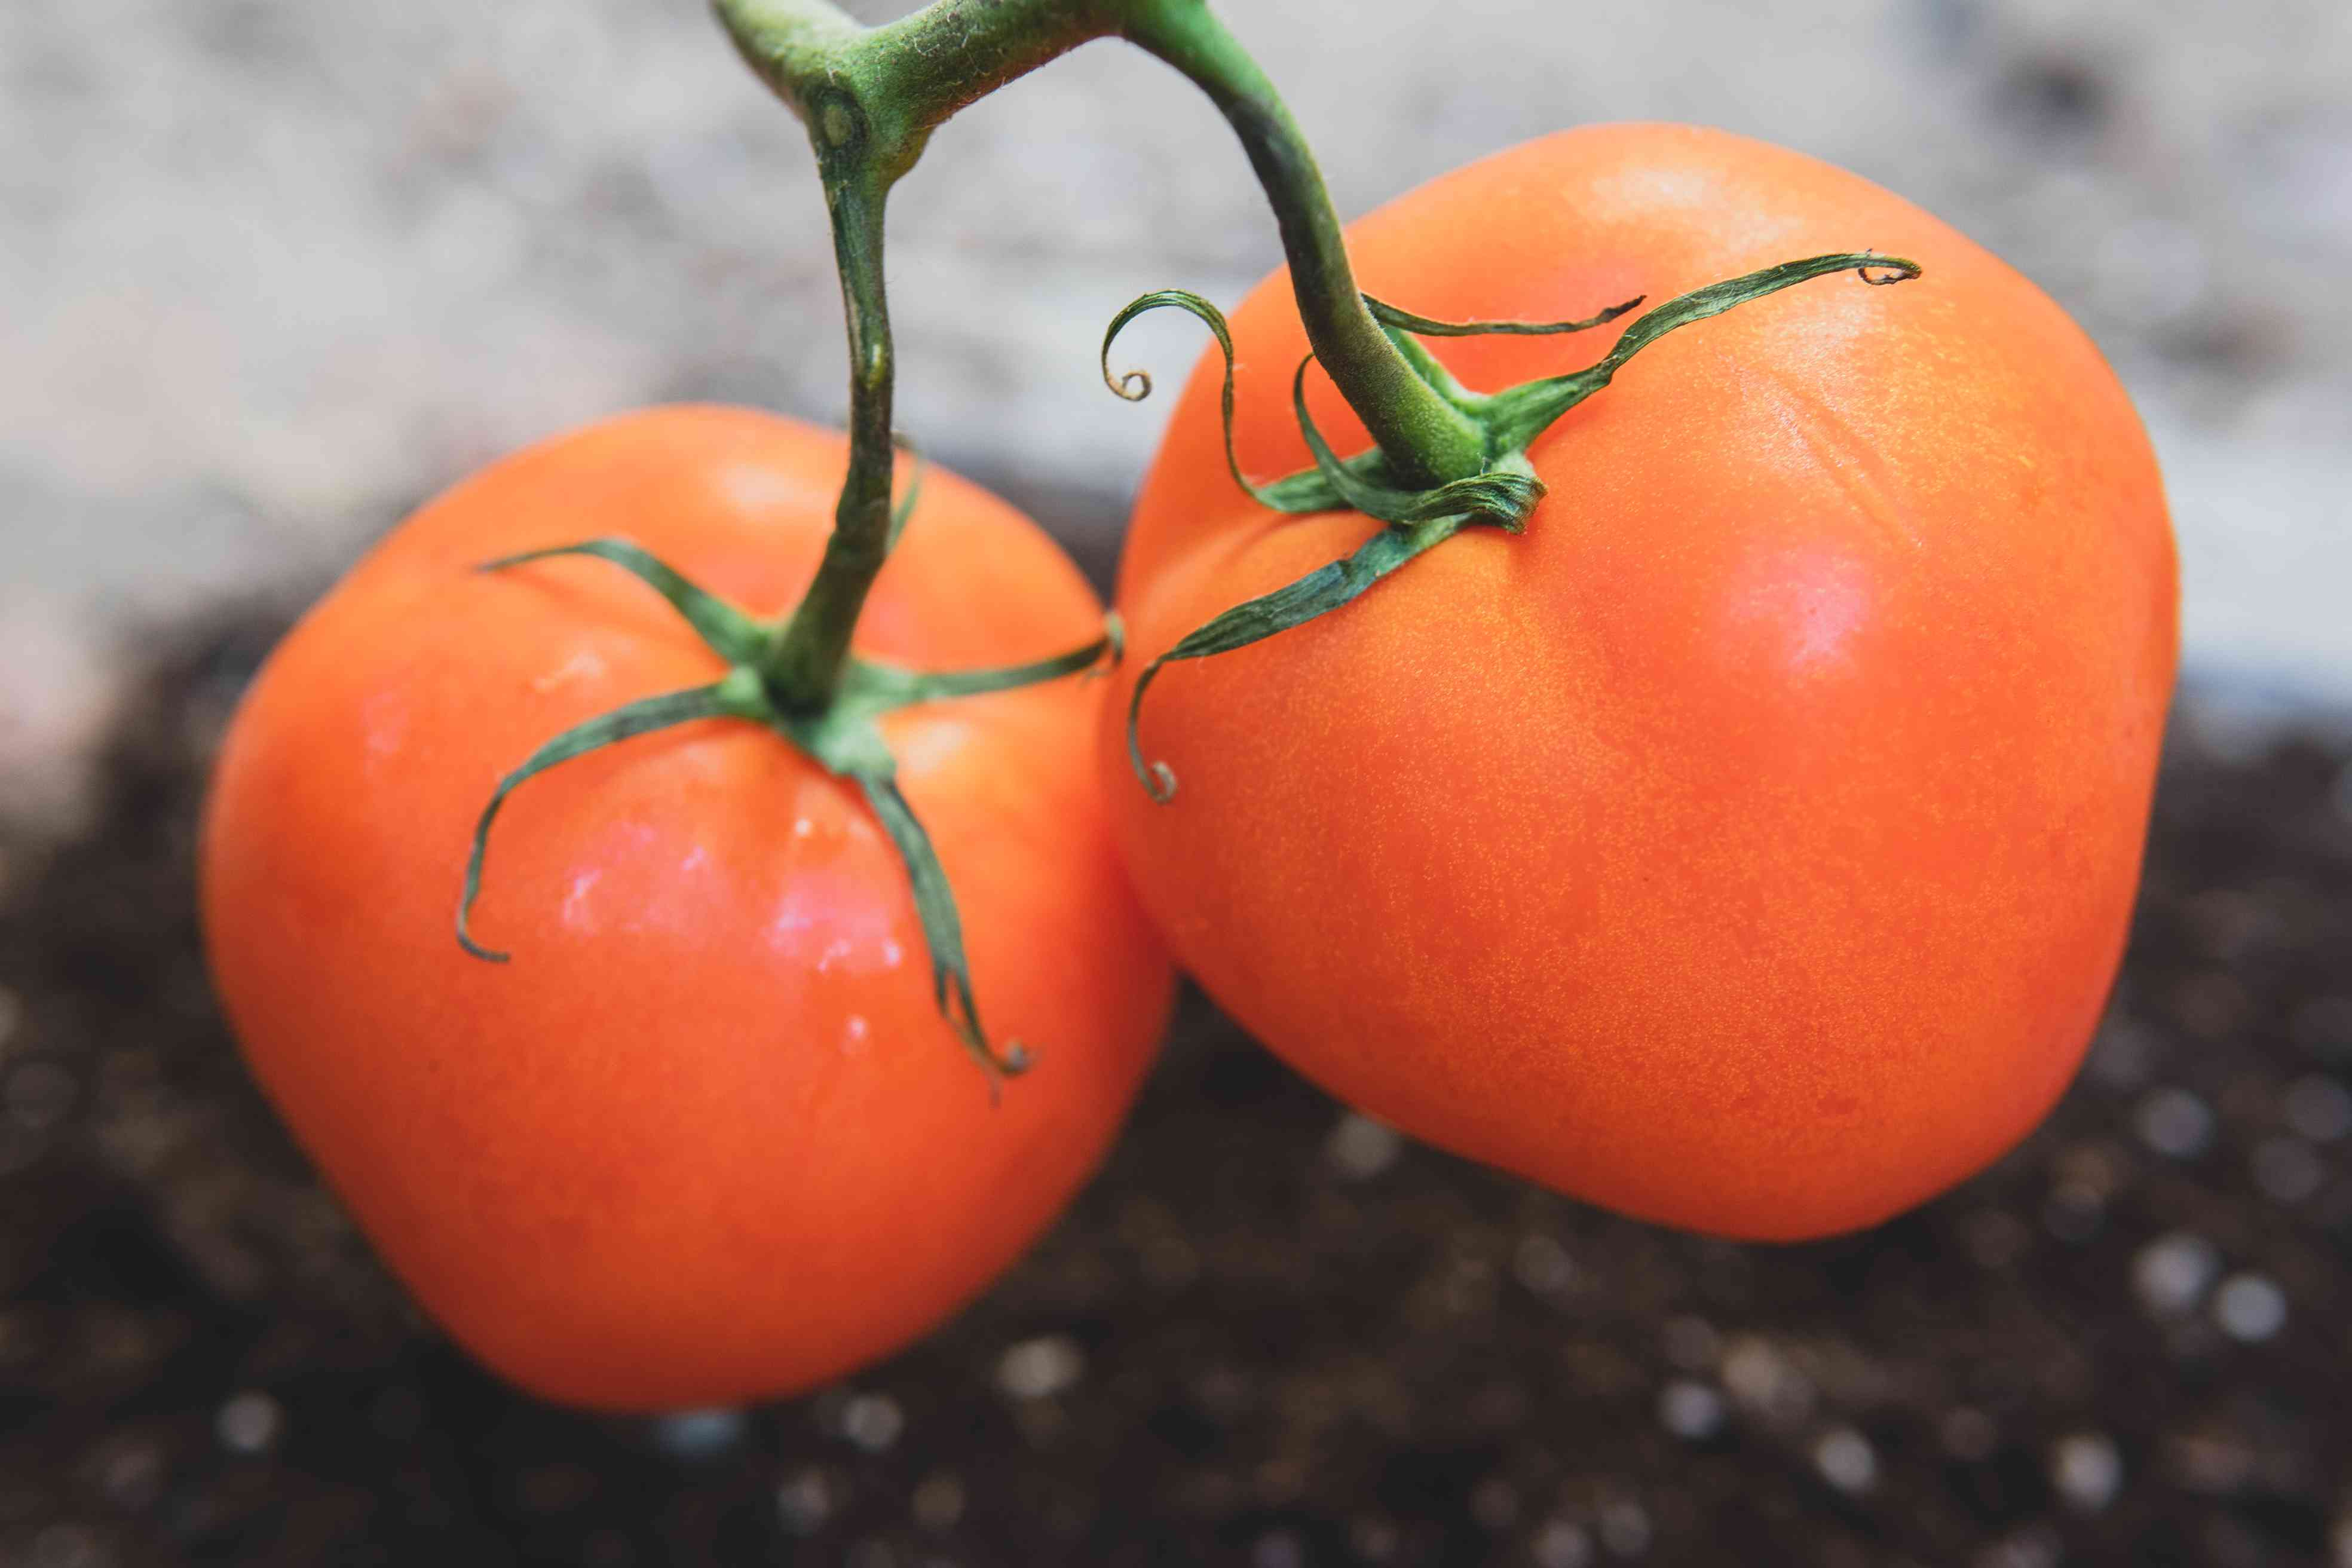 Two plump red tomatoes on a vine.